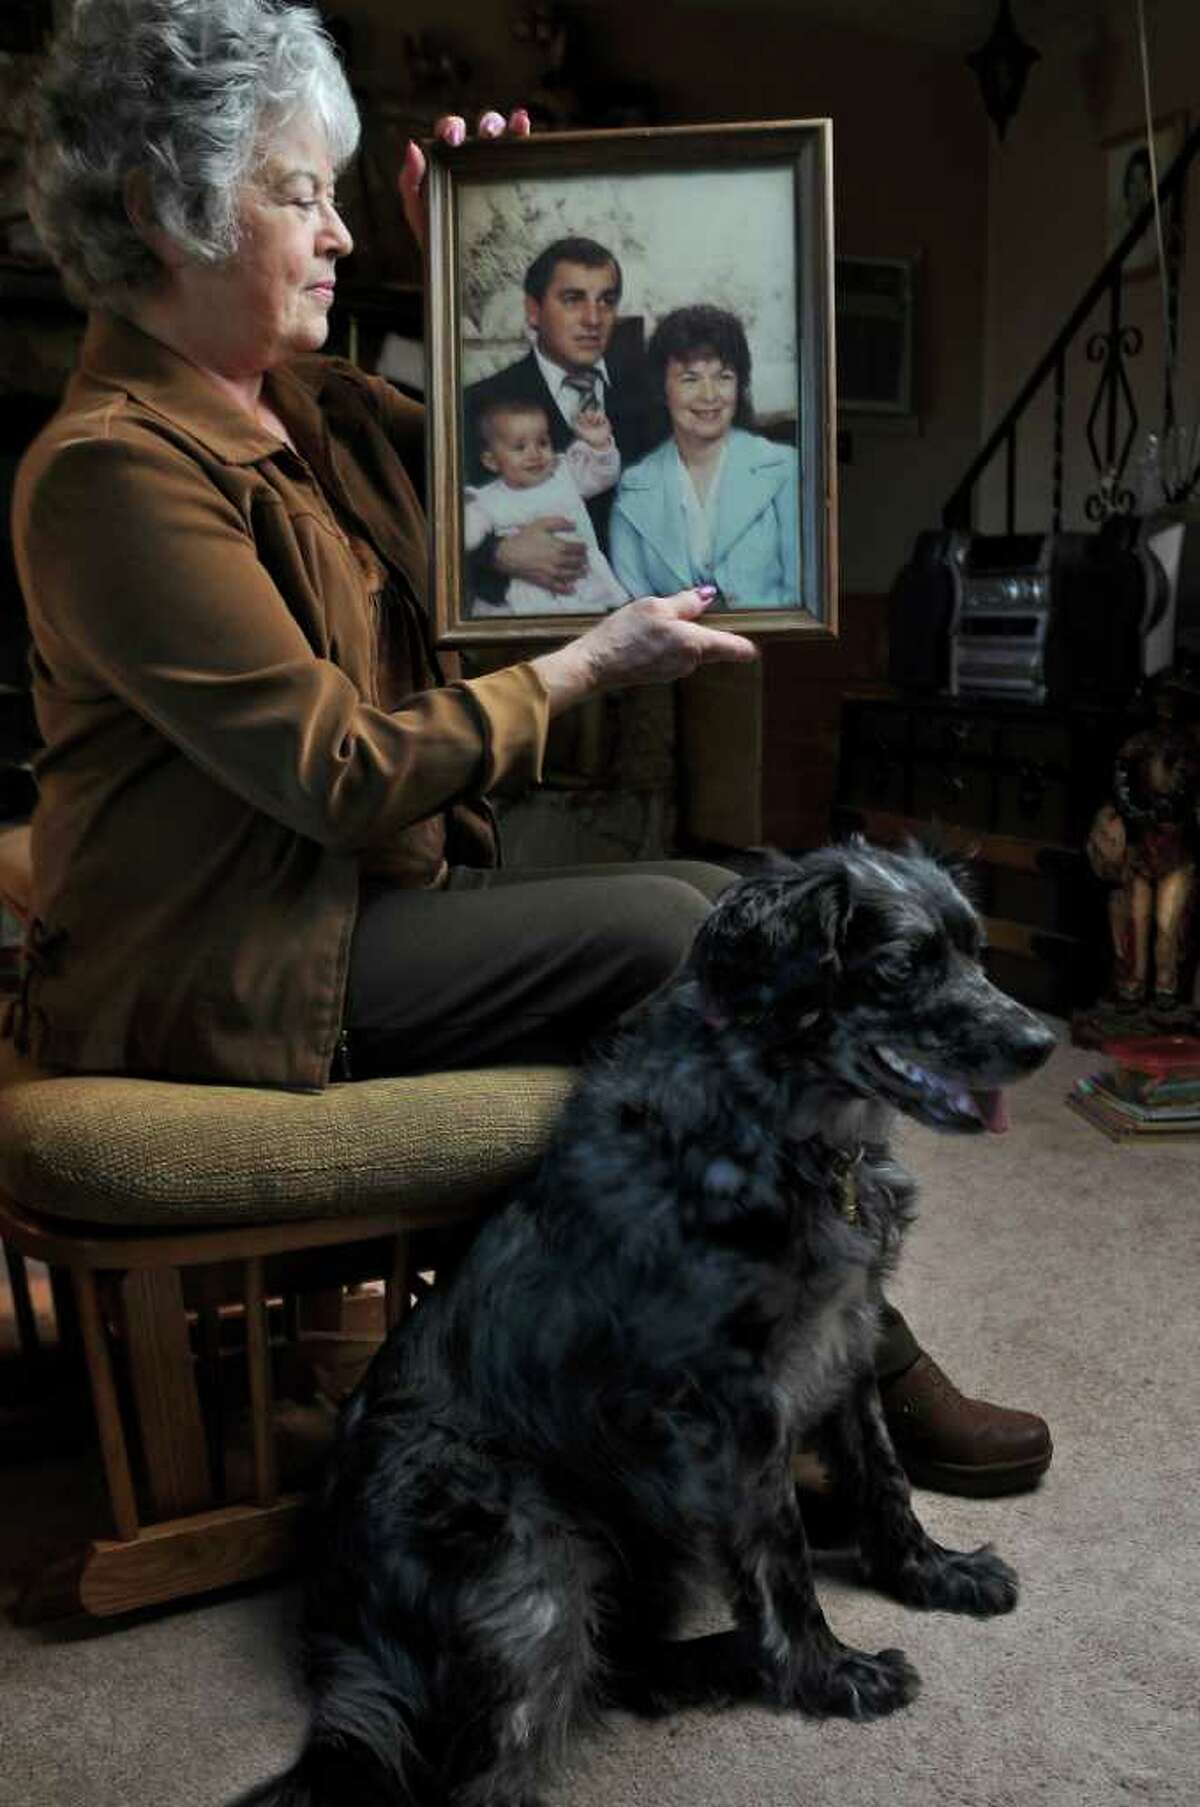 Margaret Porto LaMori holds a 1984 photograph of herself with her late husband Peter E. Porto and their grandchild Krishna, on Tuesday Dec. 13, 2011 in Scotia, N.Y. Peter died in 2006 from illness related to exposure to asbestos. Her dog Boo sits next to her. (Philip Kamrass / Times Union)